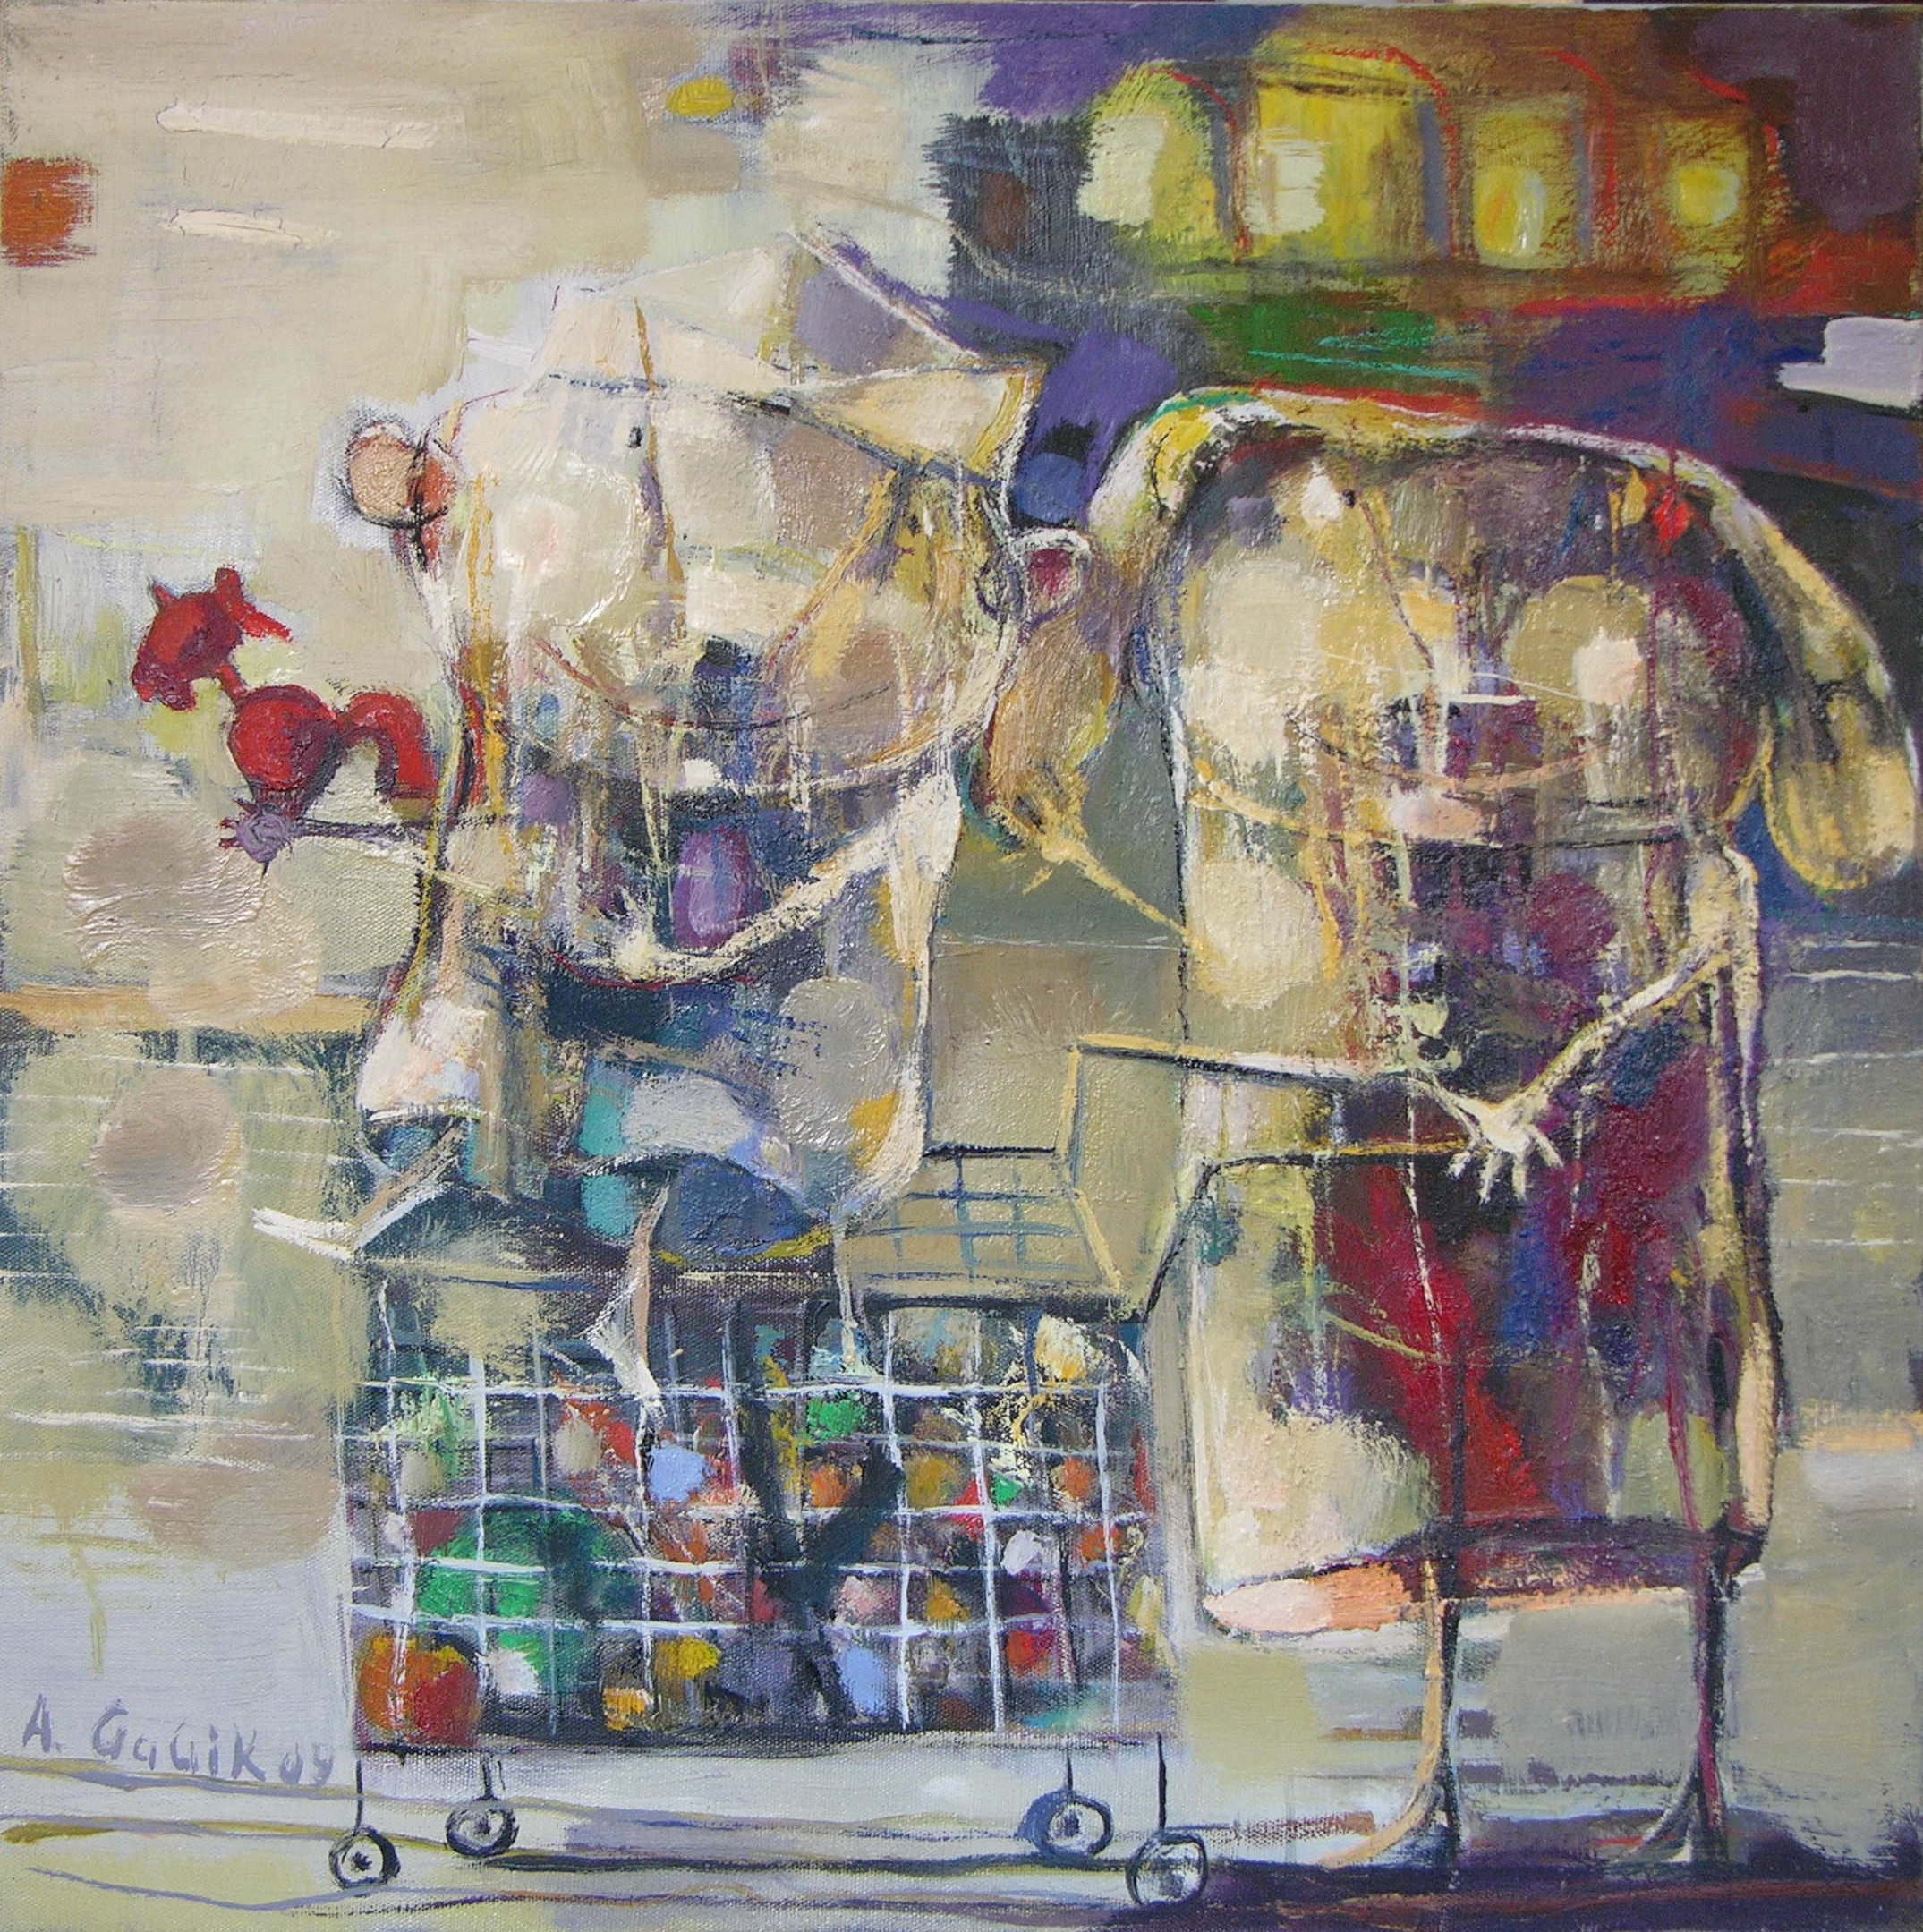 In the supermarket, 2009